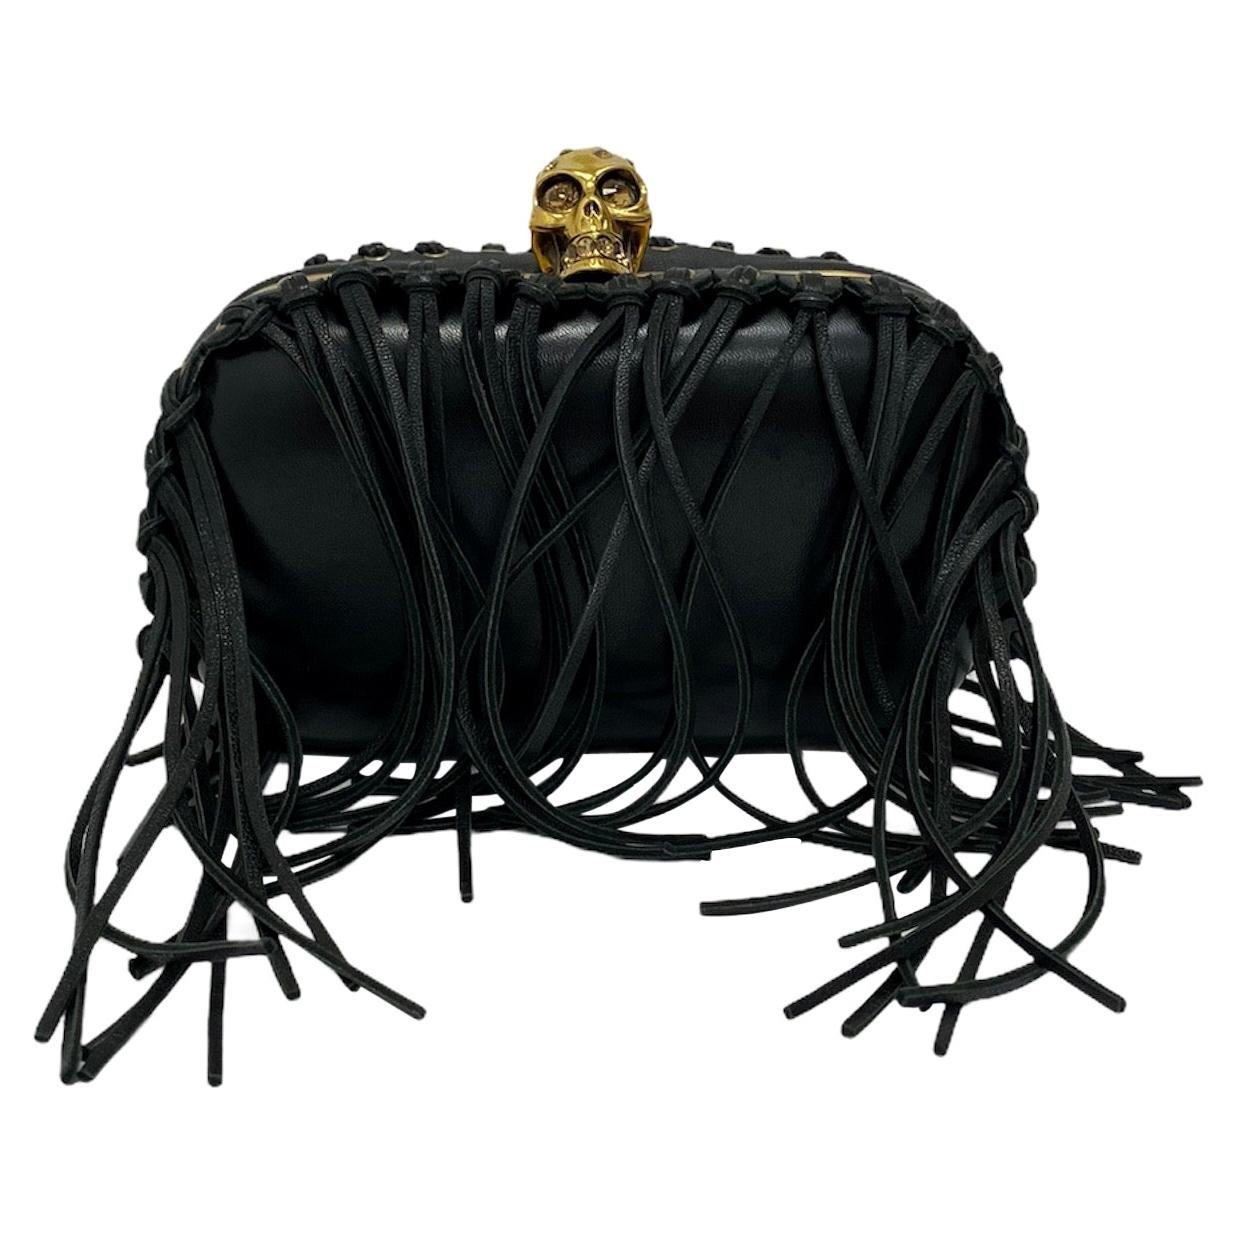 Clutch Alexander McQueen Bag in Black Leather with Fringes